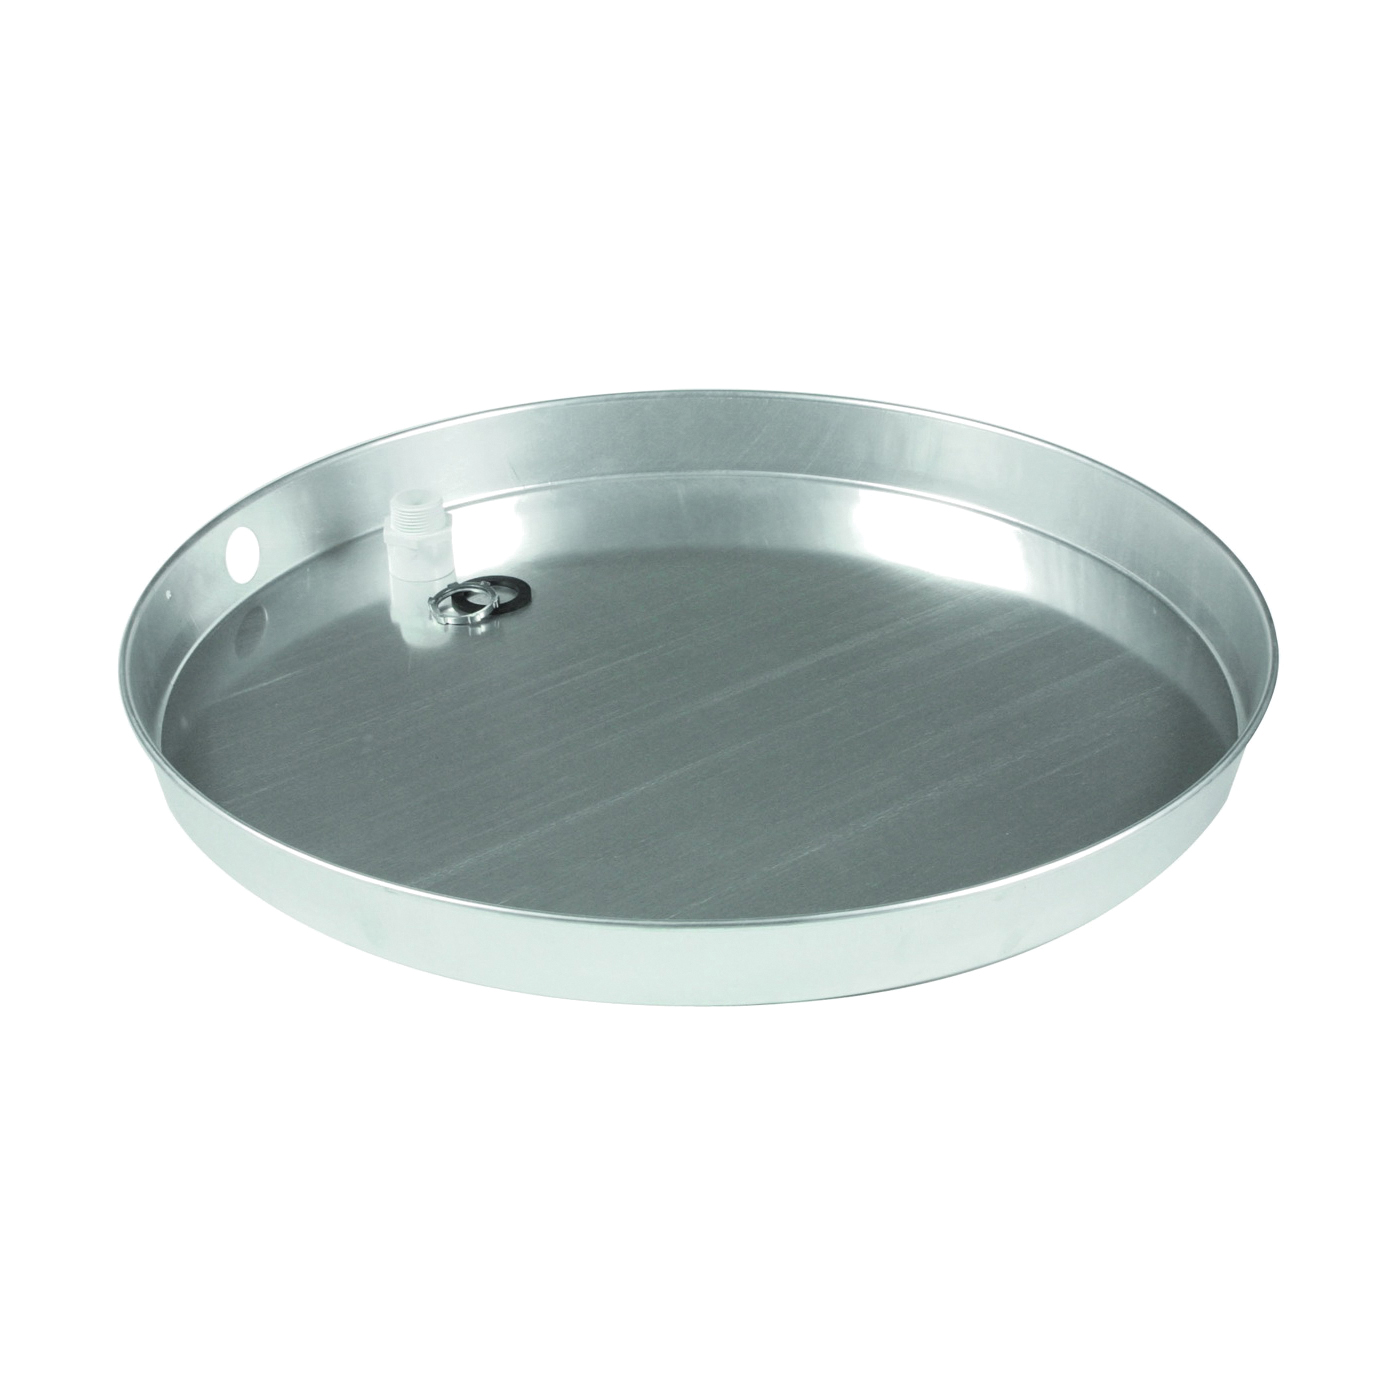 Picture of CAMCO 20800 Recyclable Drain Pan, Aluminum, For: Gas or Electric Water Heaters